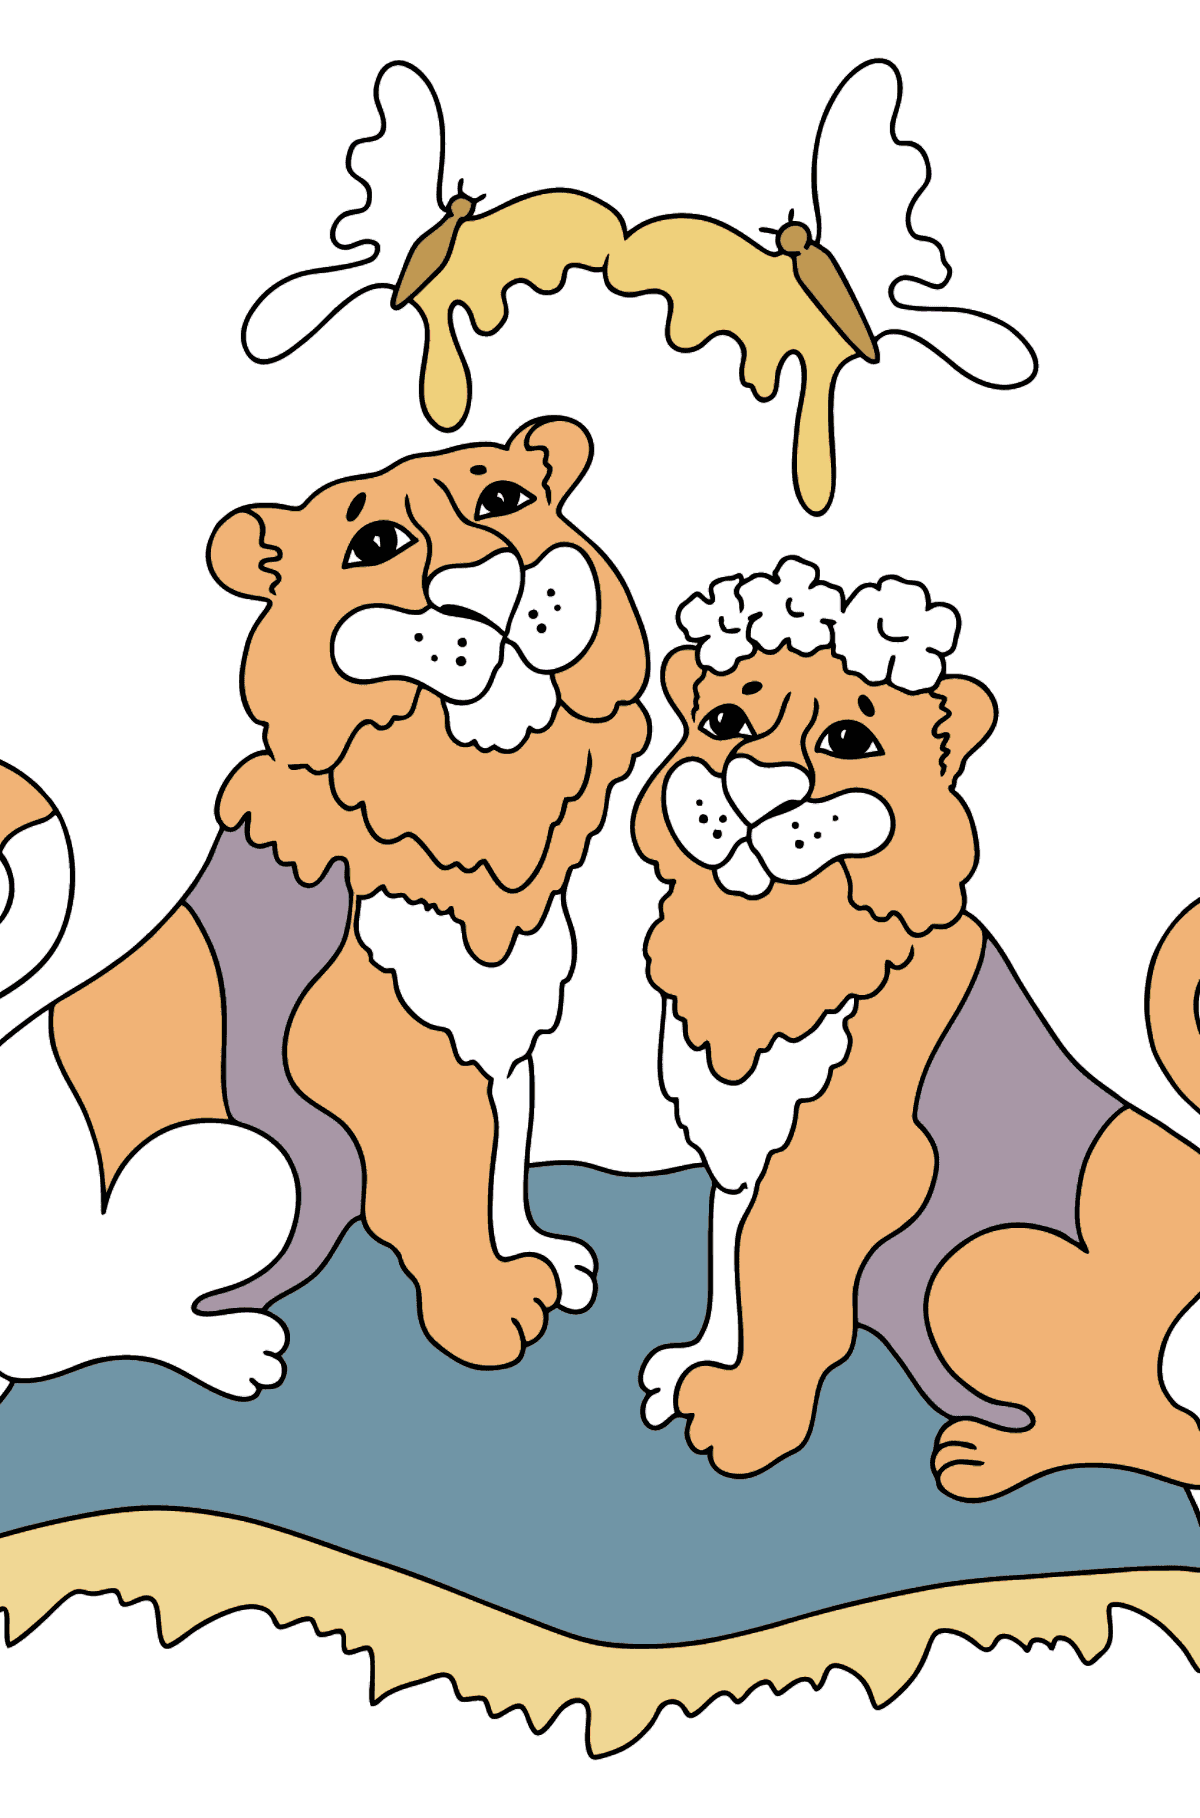 Coloring Page - Tigers with Butterflies - Coloring Pages for Kids